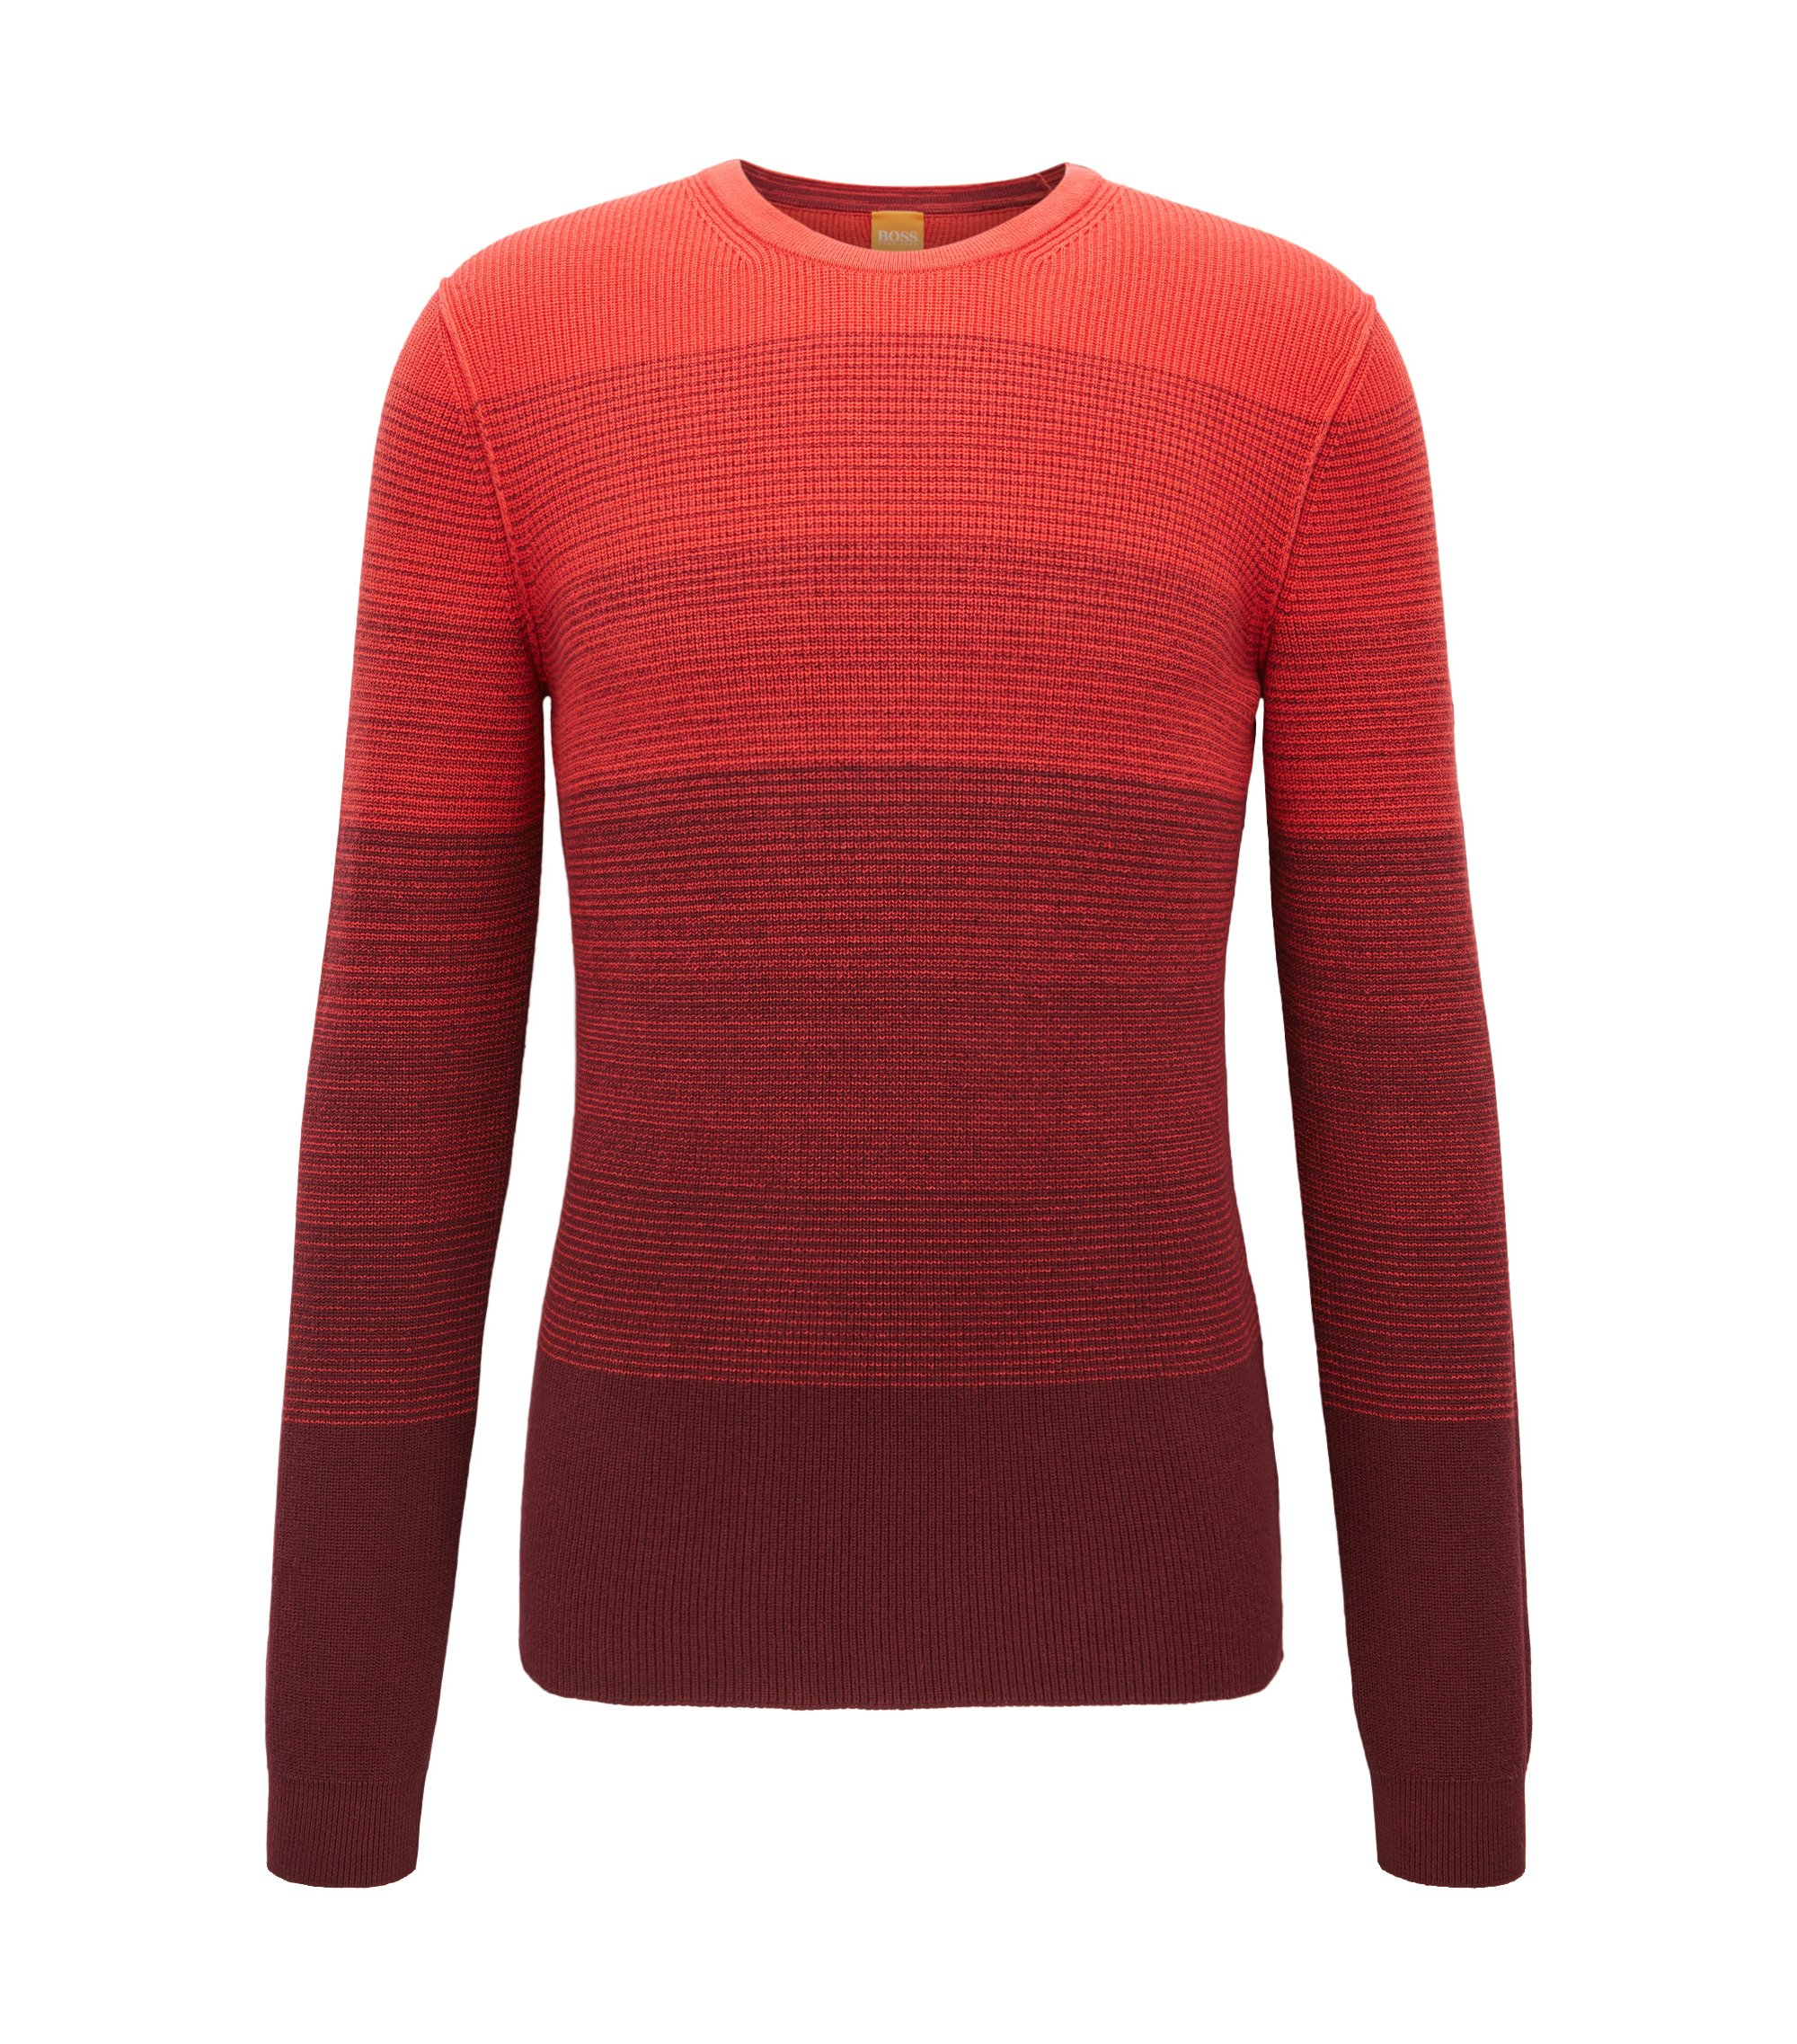 Cotton sweater with dégradé rib structure, Red